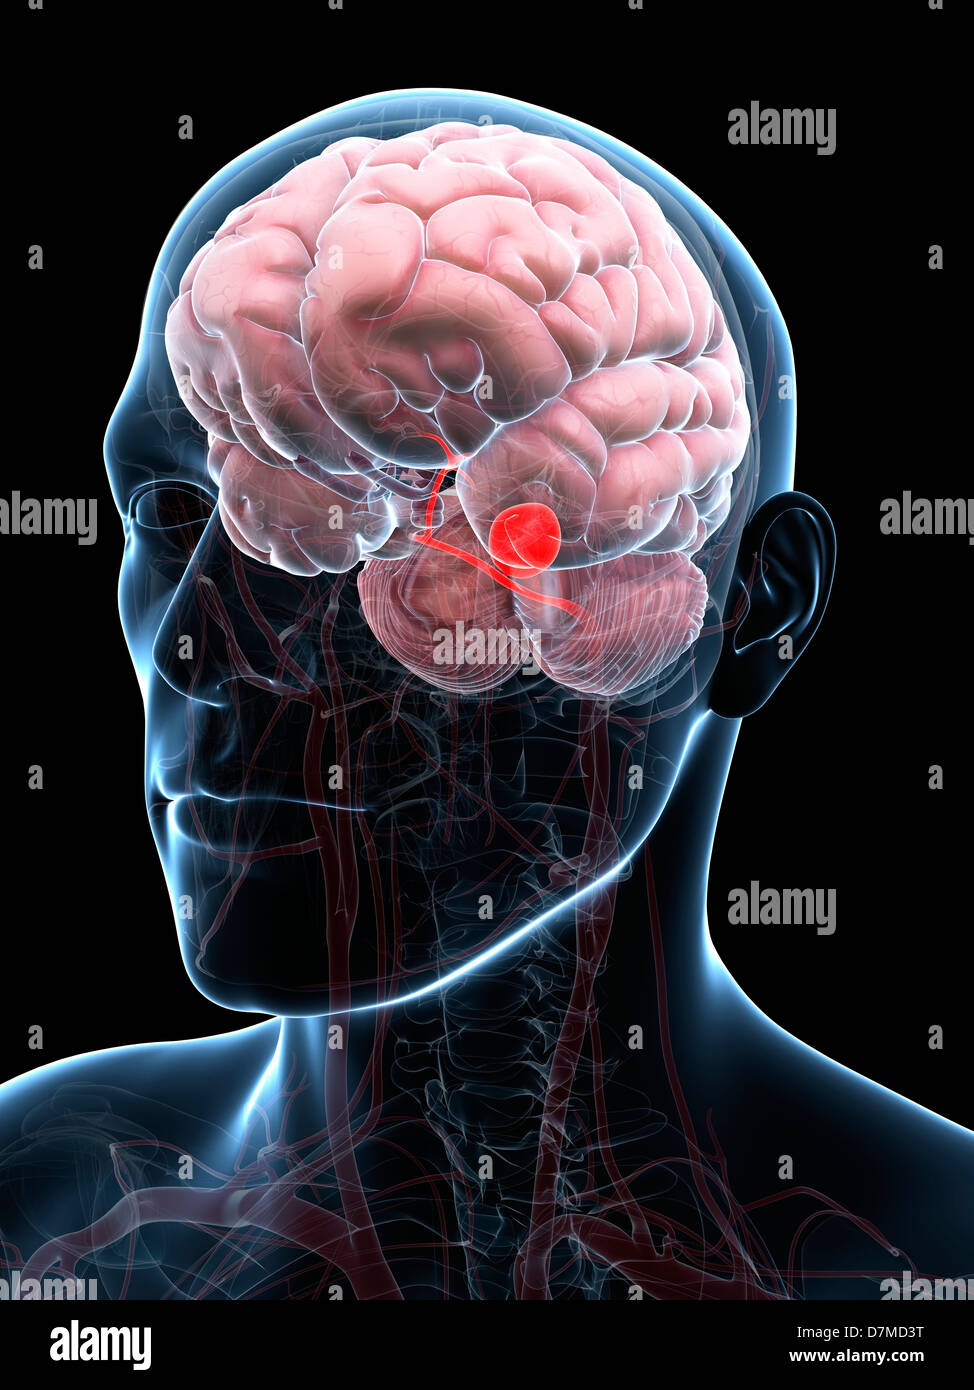 Aneurysm Of The Brain Stock Photos & Aneurysm Of The Brain Stock ...